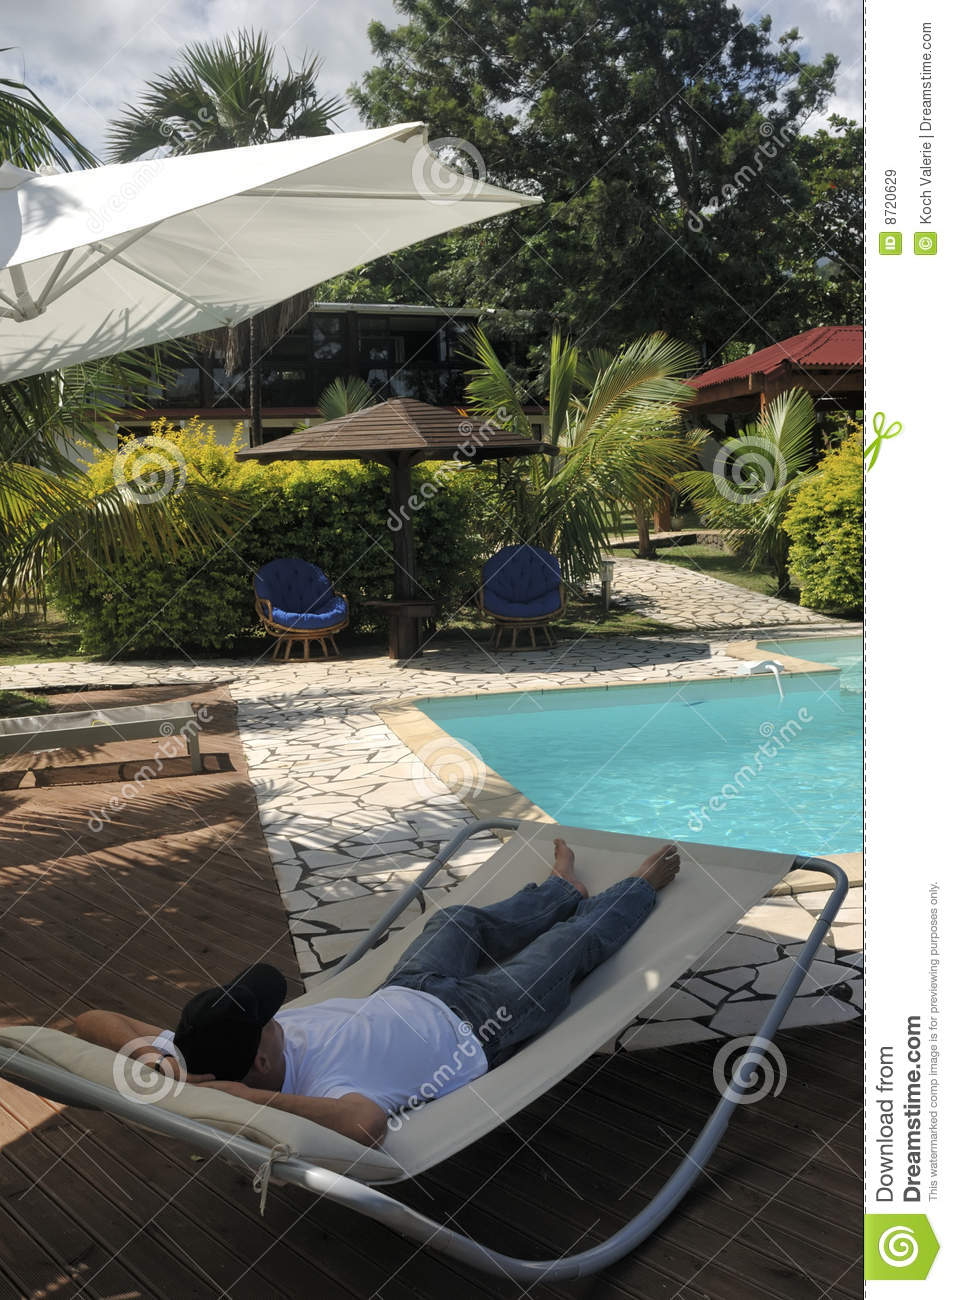 Free Swimming Pool: Relax At Swimming Pool Royalty Free Stock Images